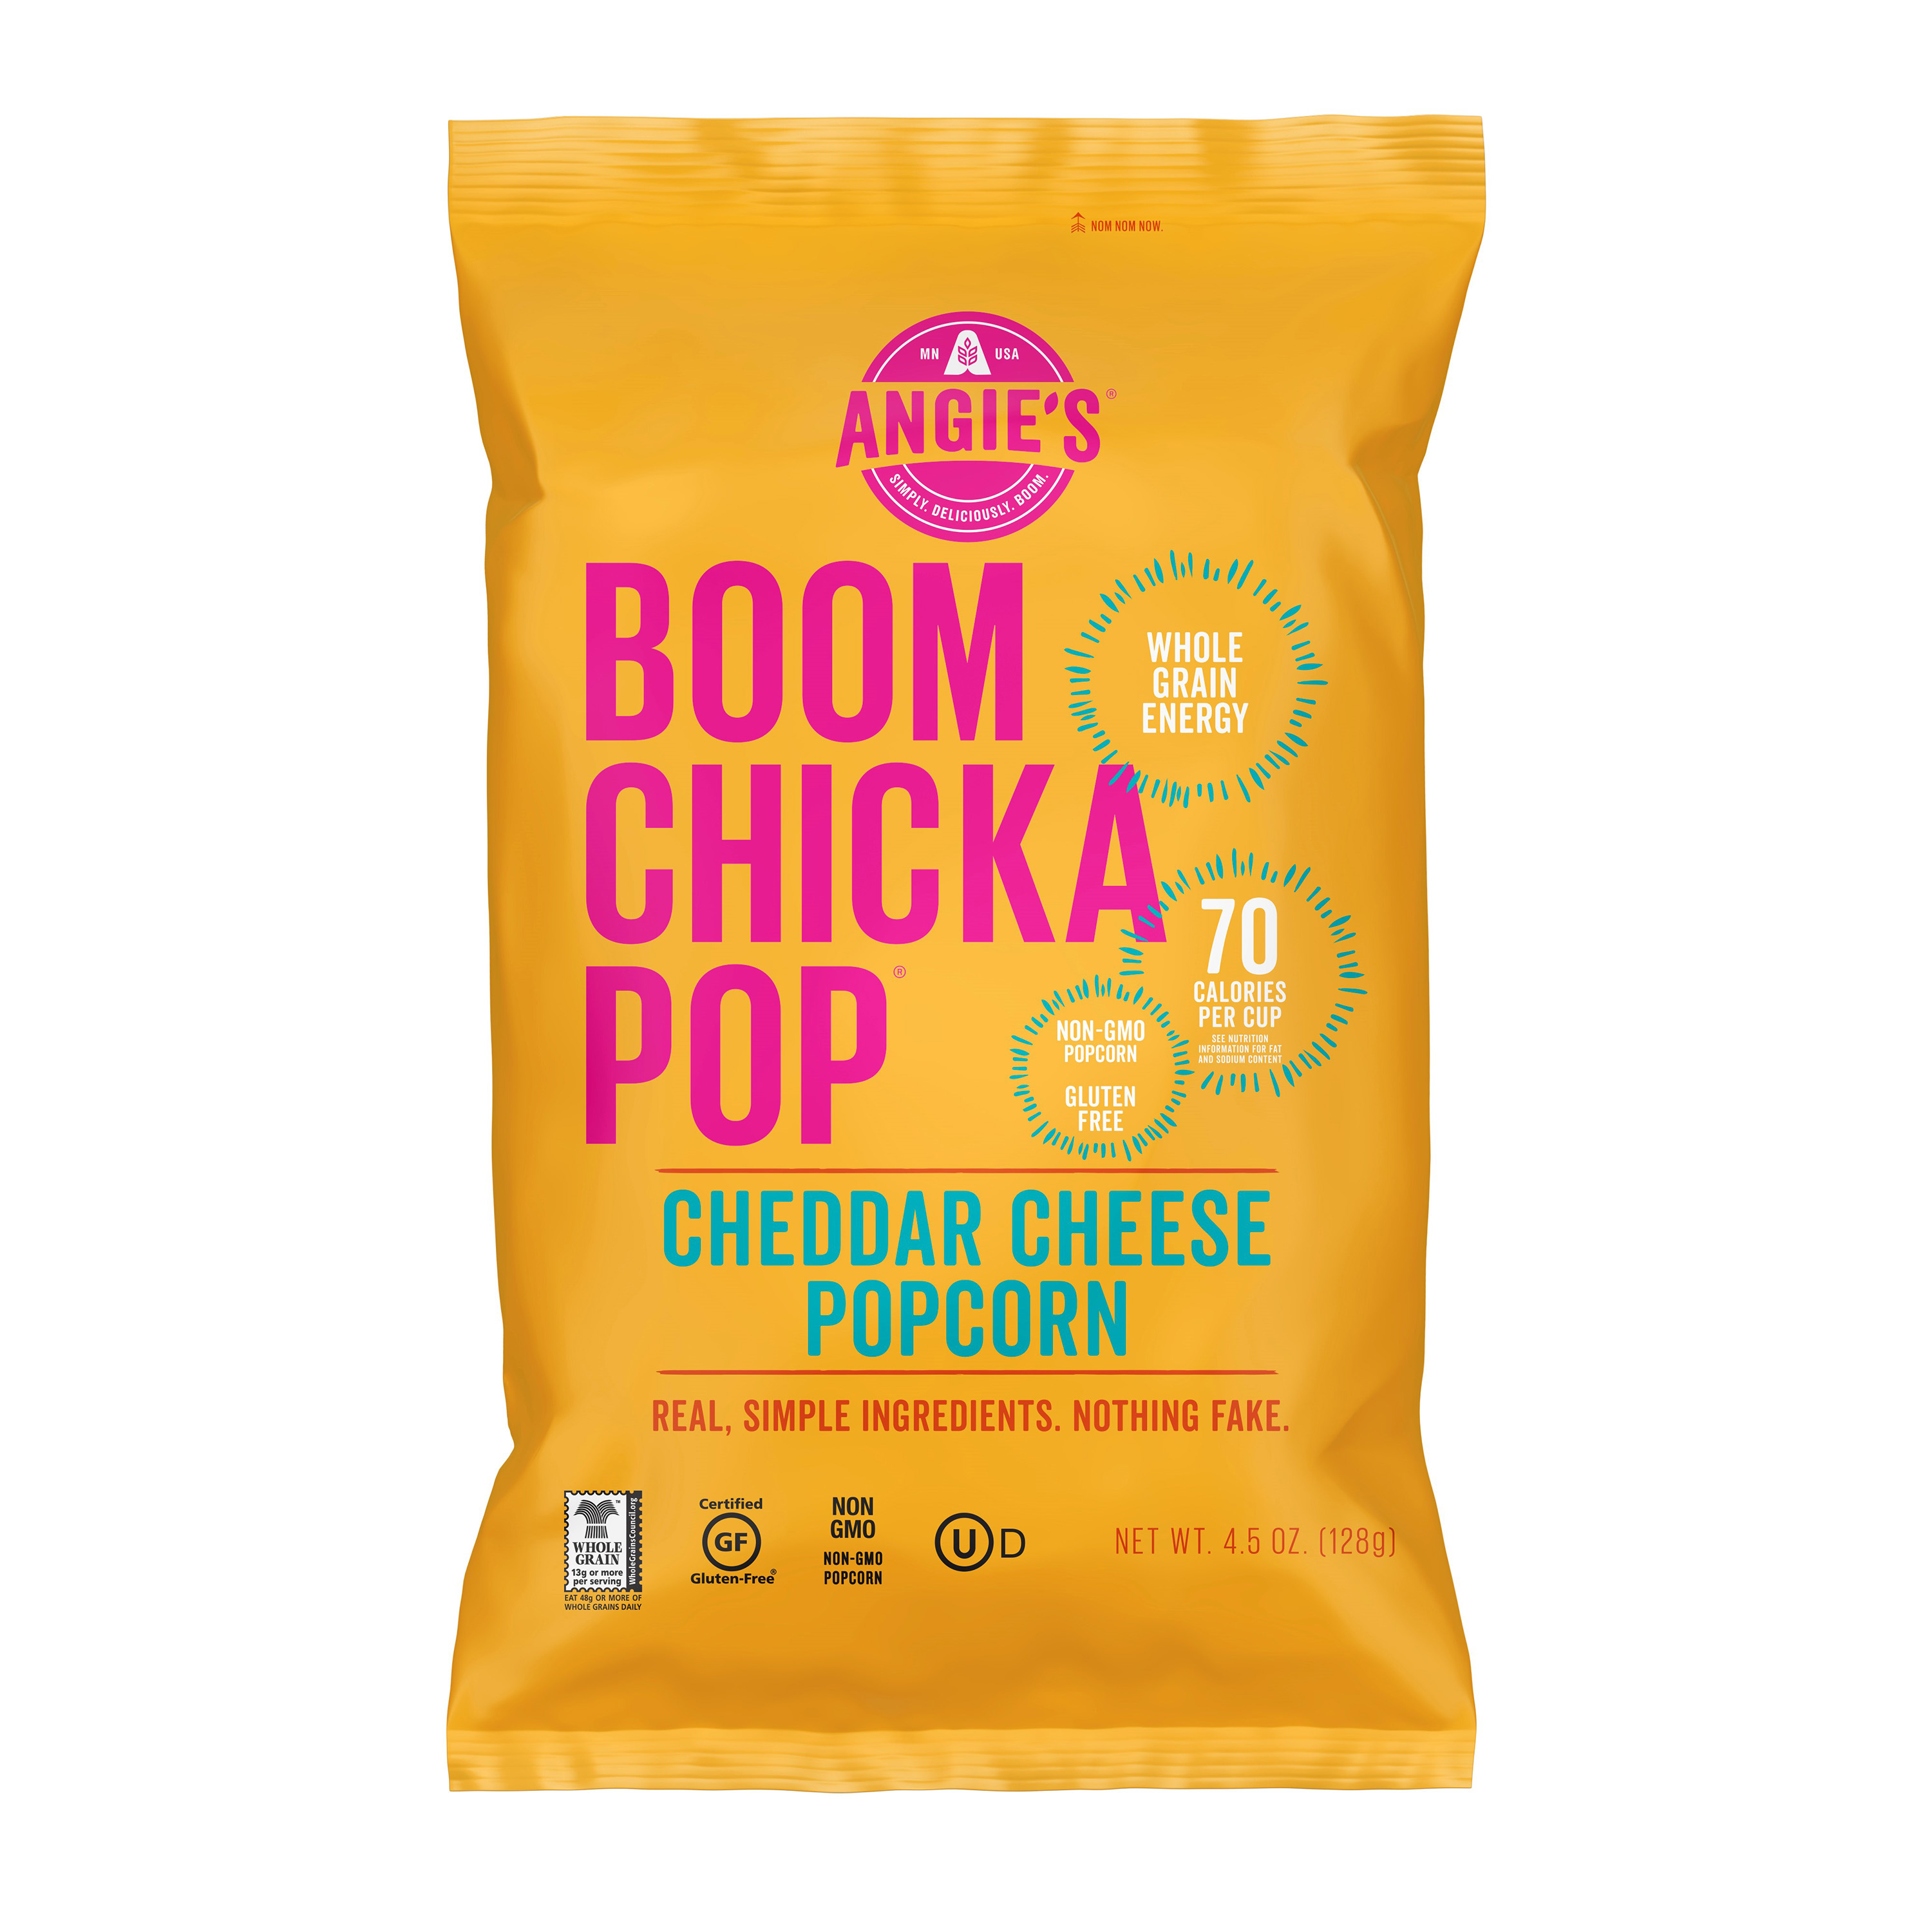 Angie's Boom Chick Pop Cheddar Cheese Popcorn, 4.5 oz